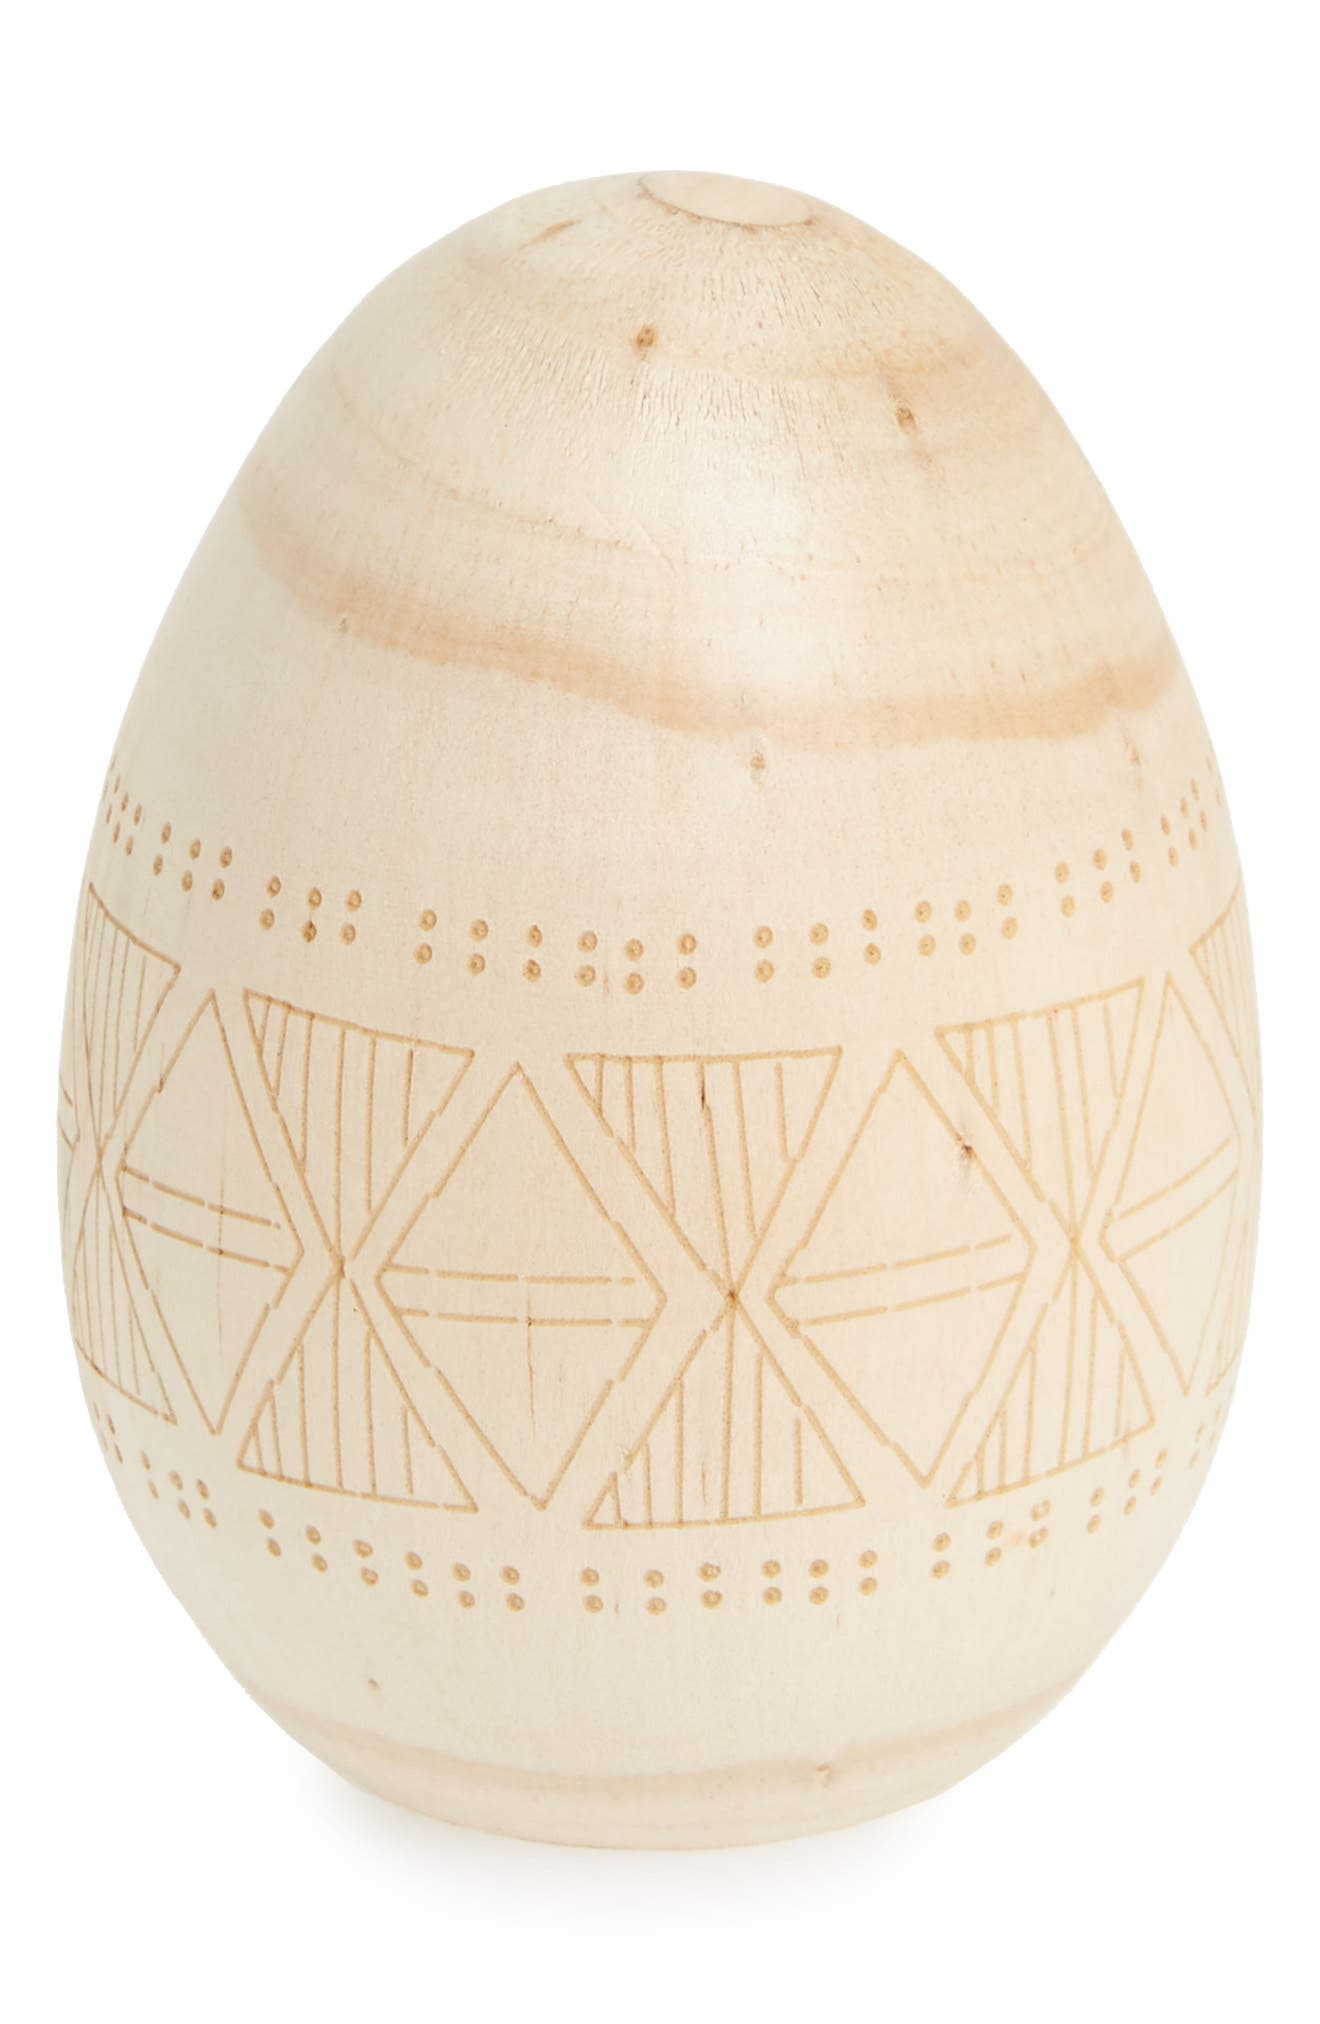 Loco Egg Carved Wooden Egg,                             Main thumbnail 1, color,